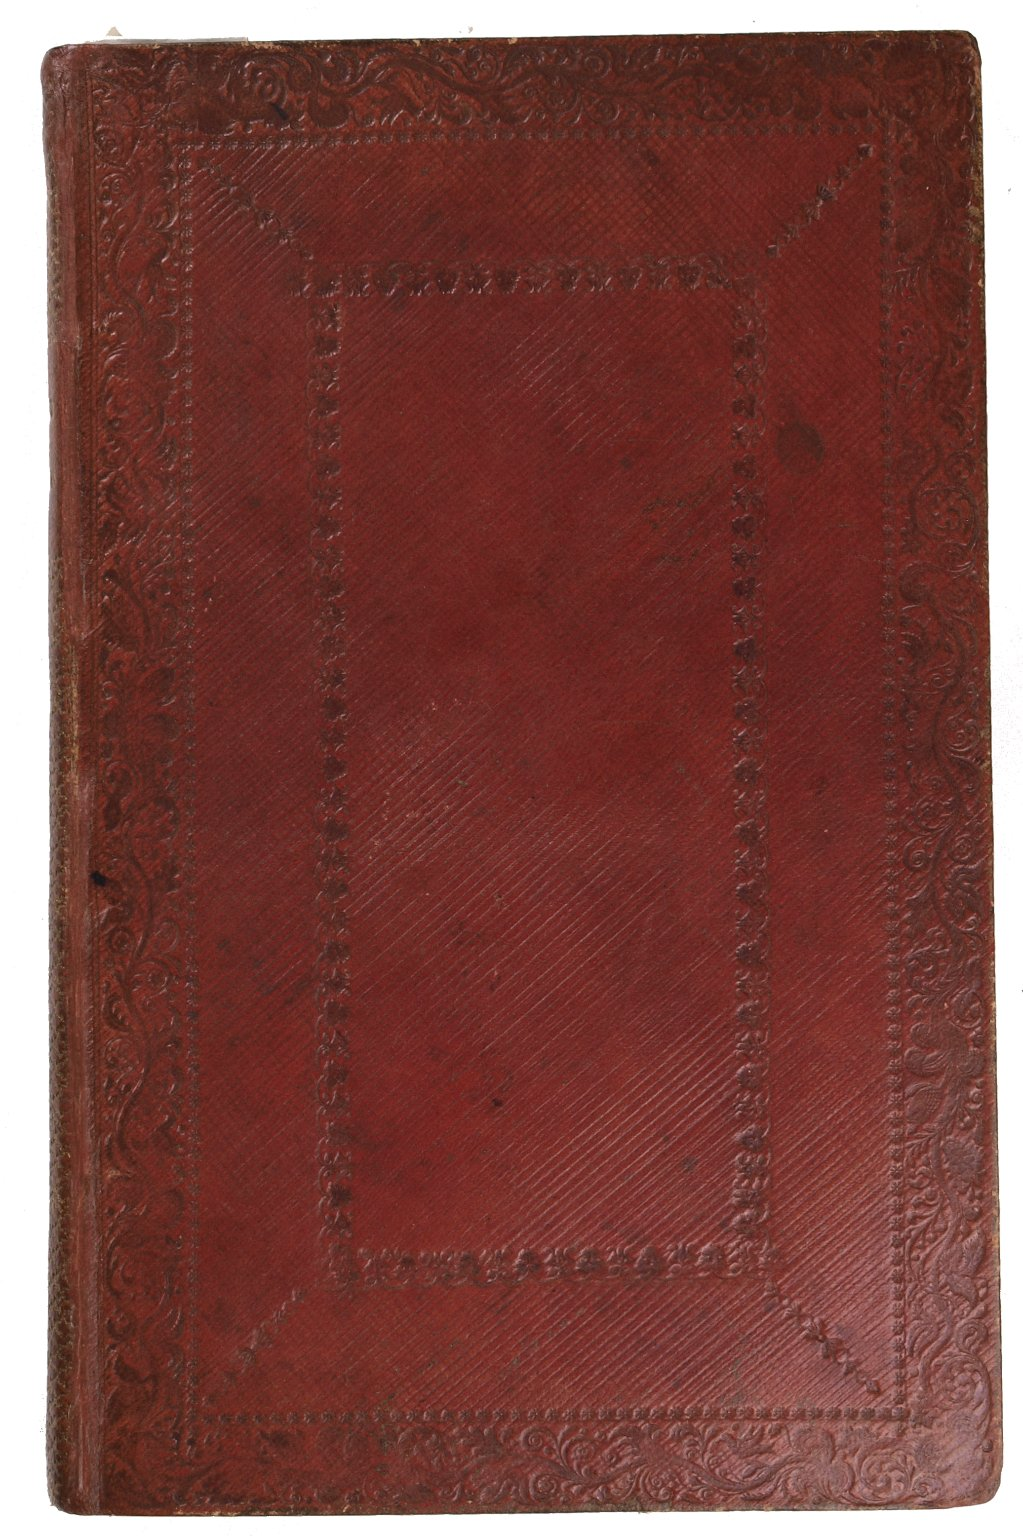 Front cover, STC 25900 c.2.